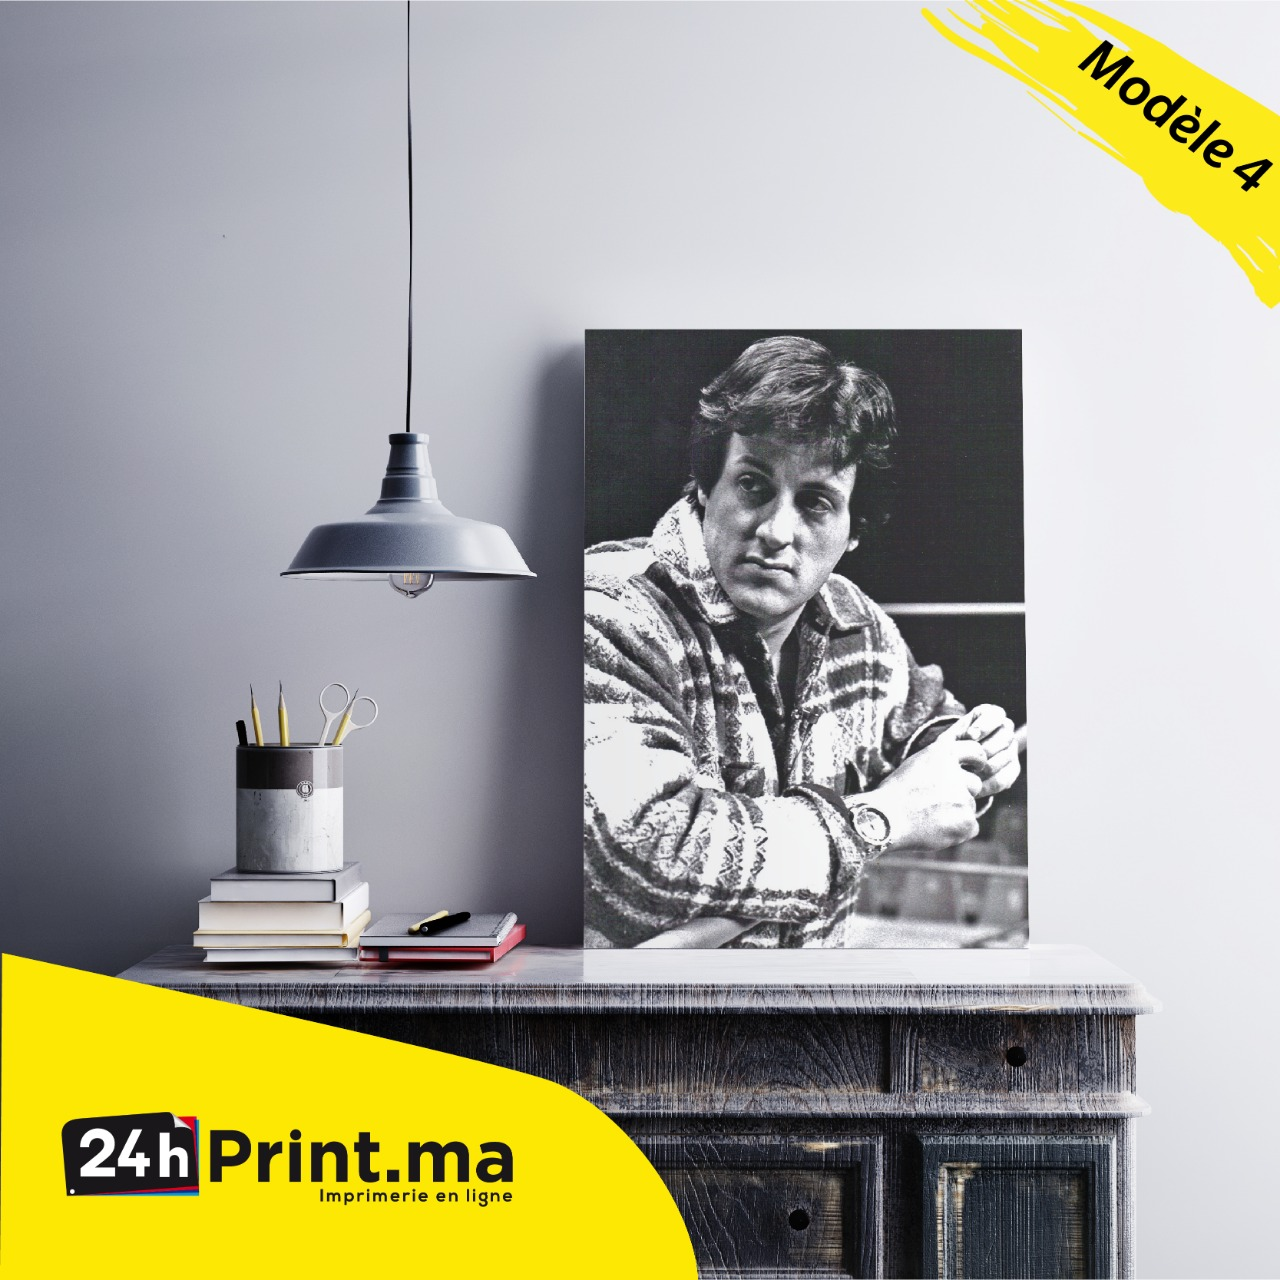 https://www.24hprint.ma/images/products_gallery_images/493.jpeg